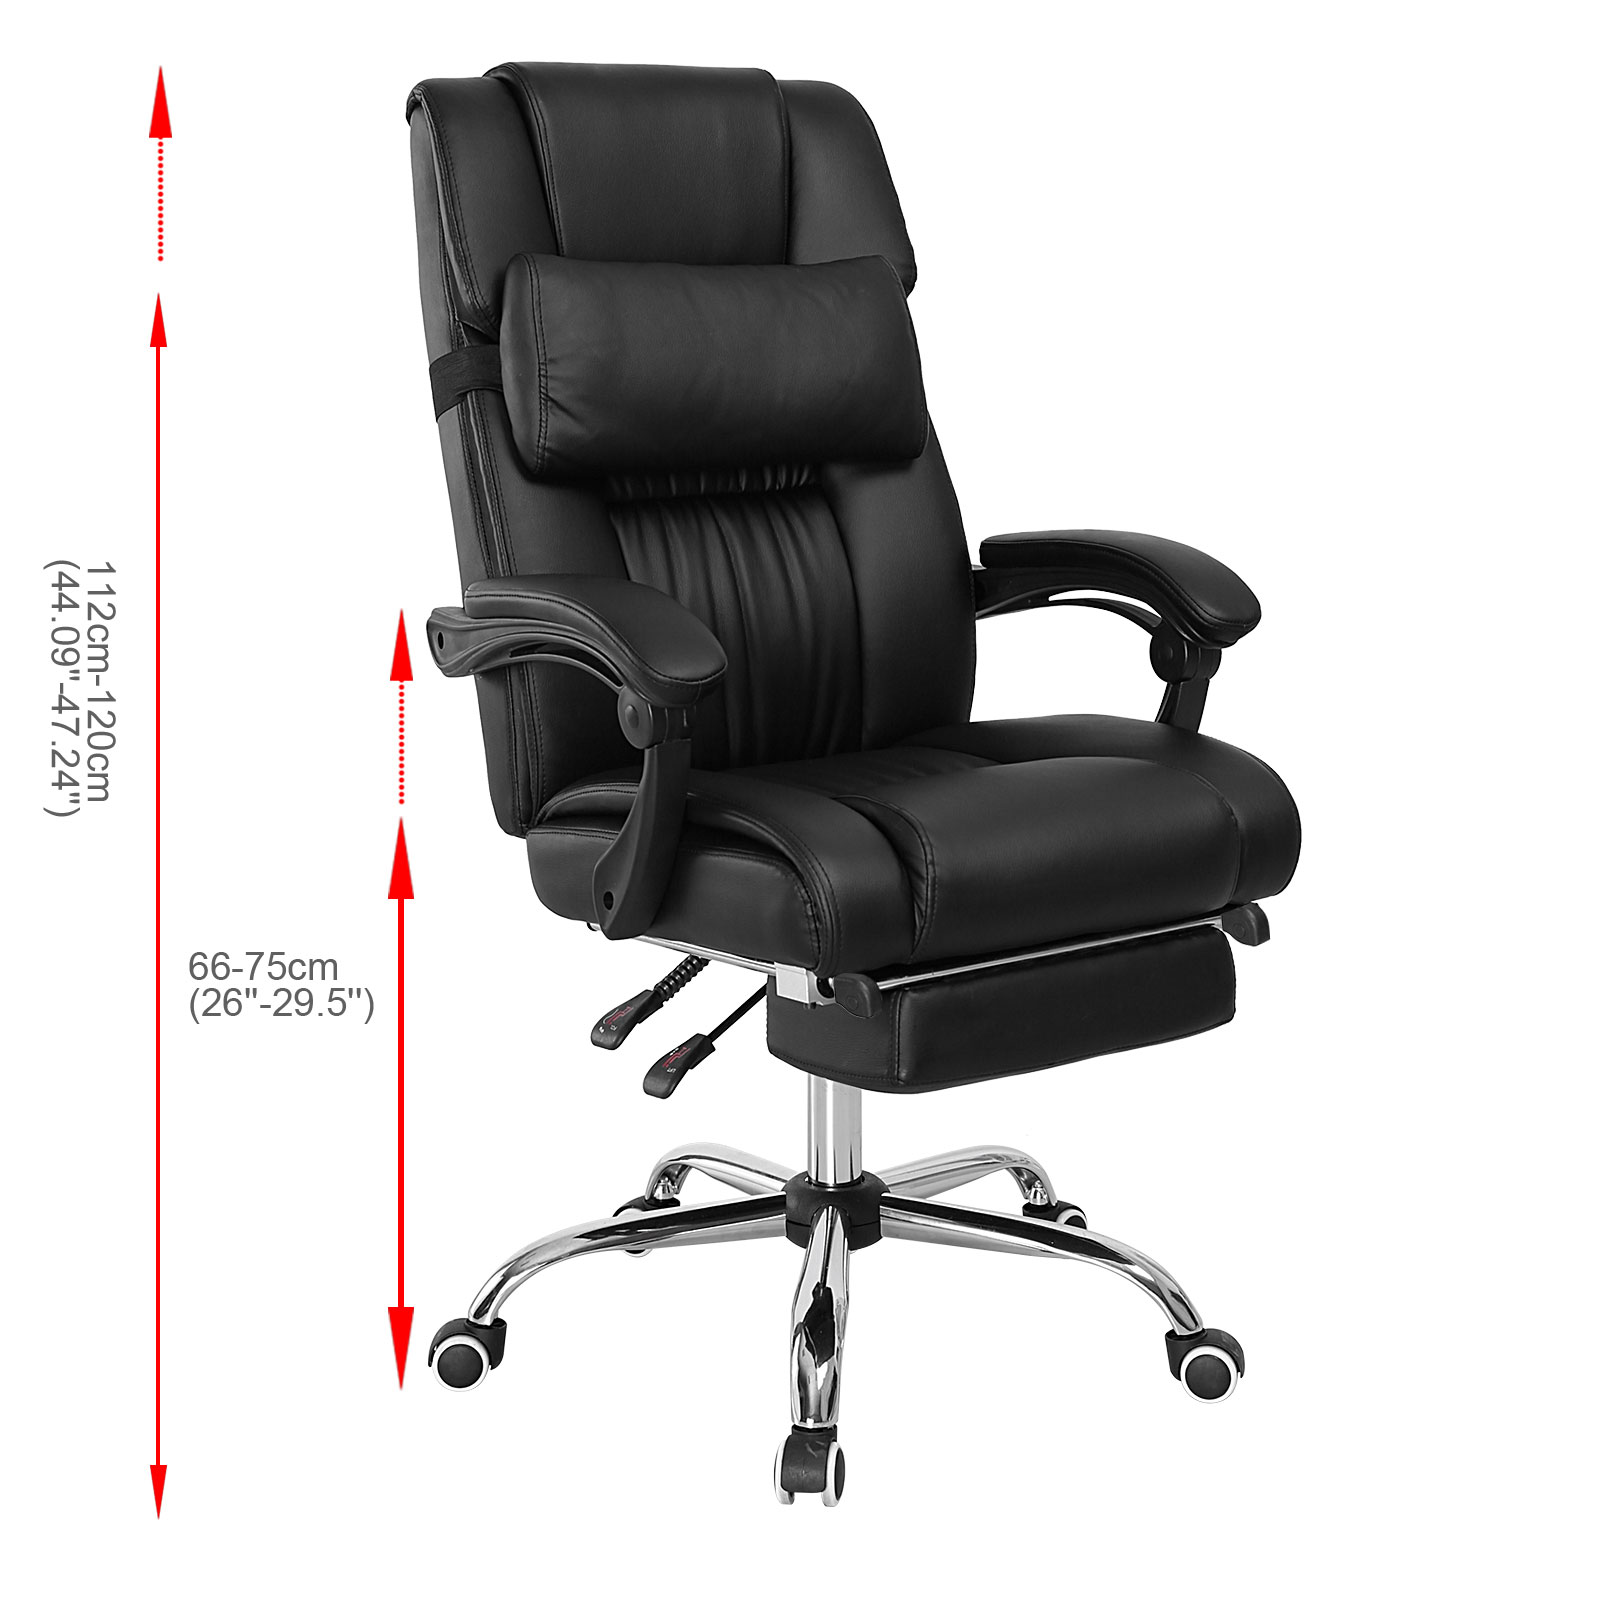 Ergonomic Reading Chair Executive Reclining Office Chair Ergonomic High Back